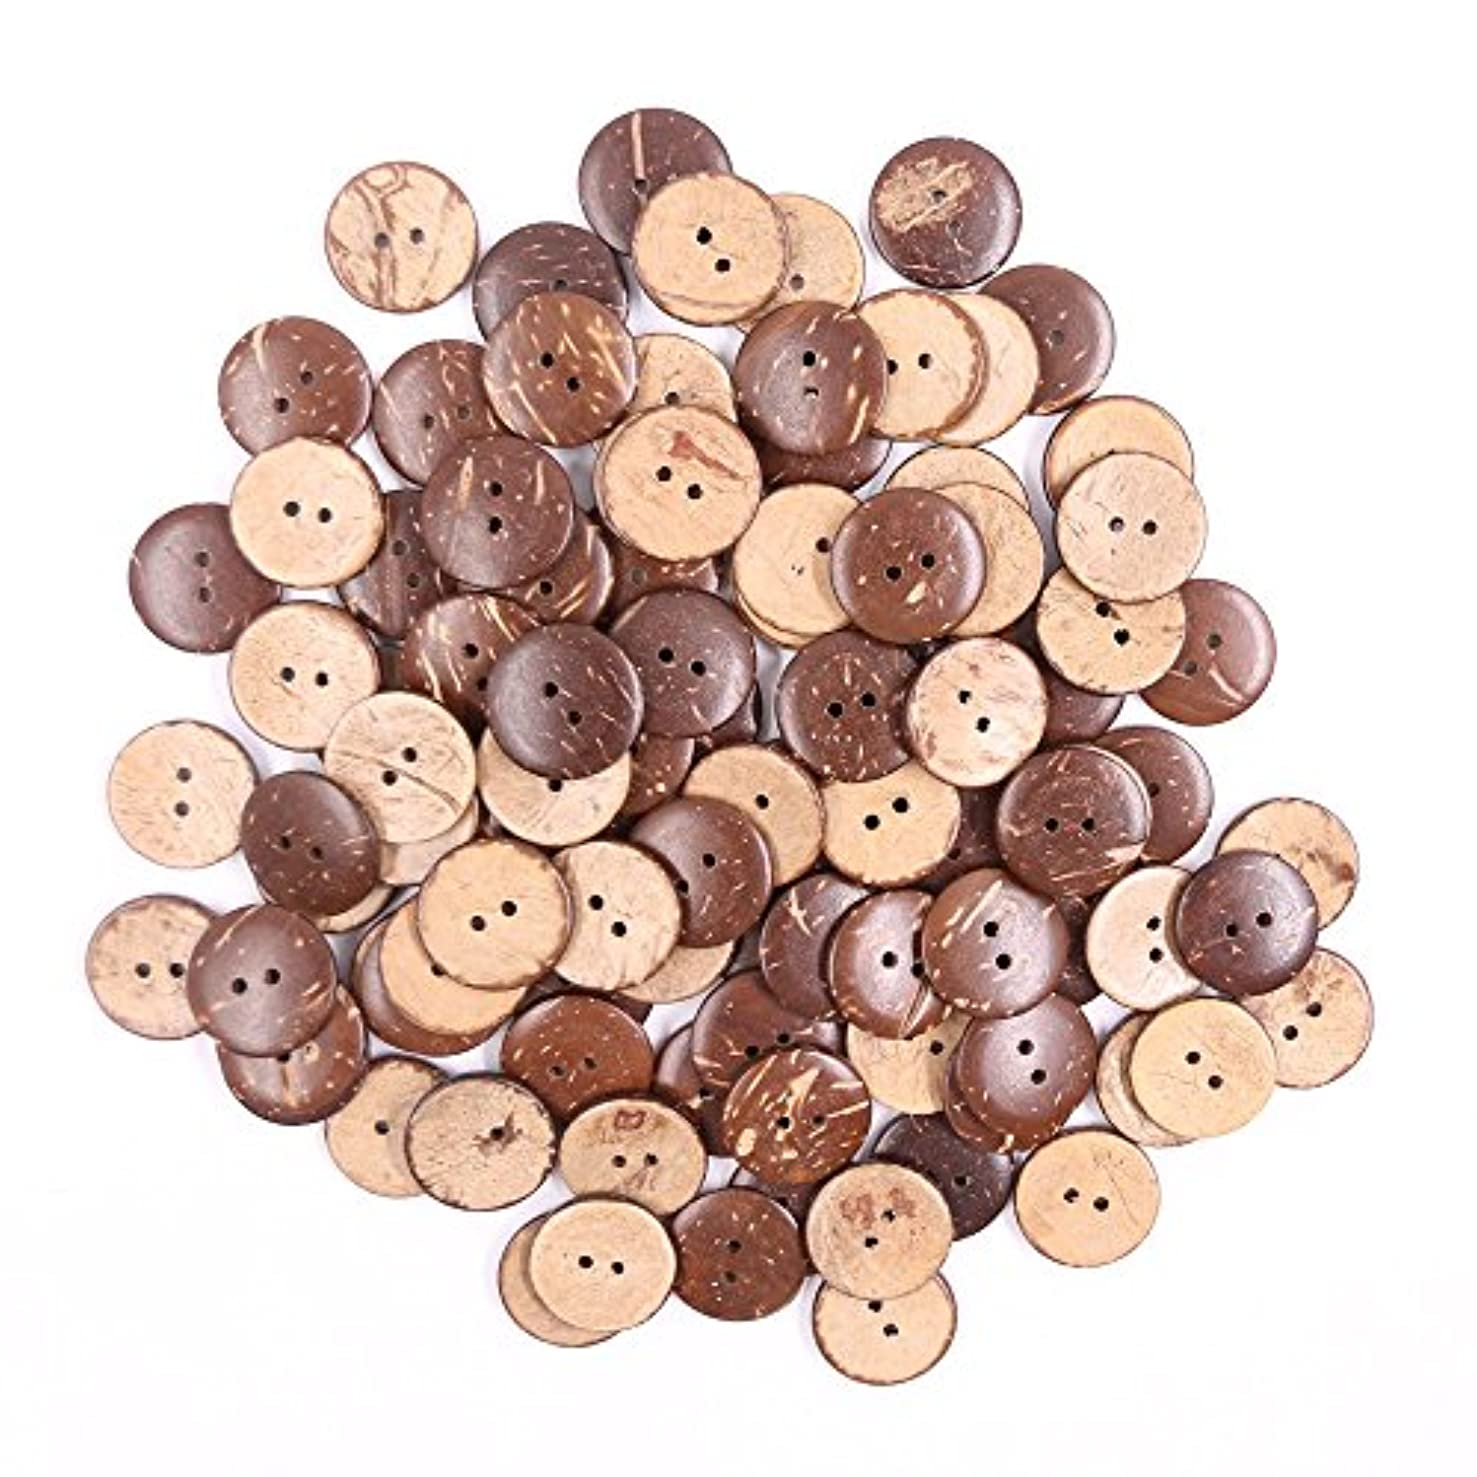 Renashed 100pcs Brown New Thick Coconut Shell Buttons 2 Hole Craft Sewing Buttons hot Products (2cm/0.78inch)